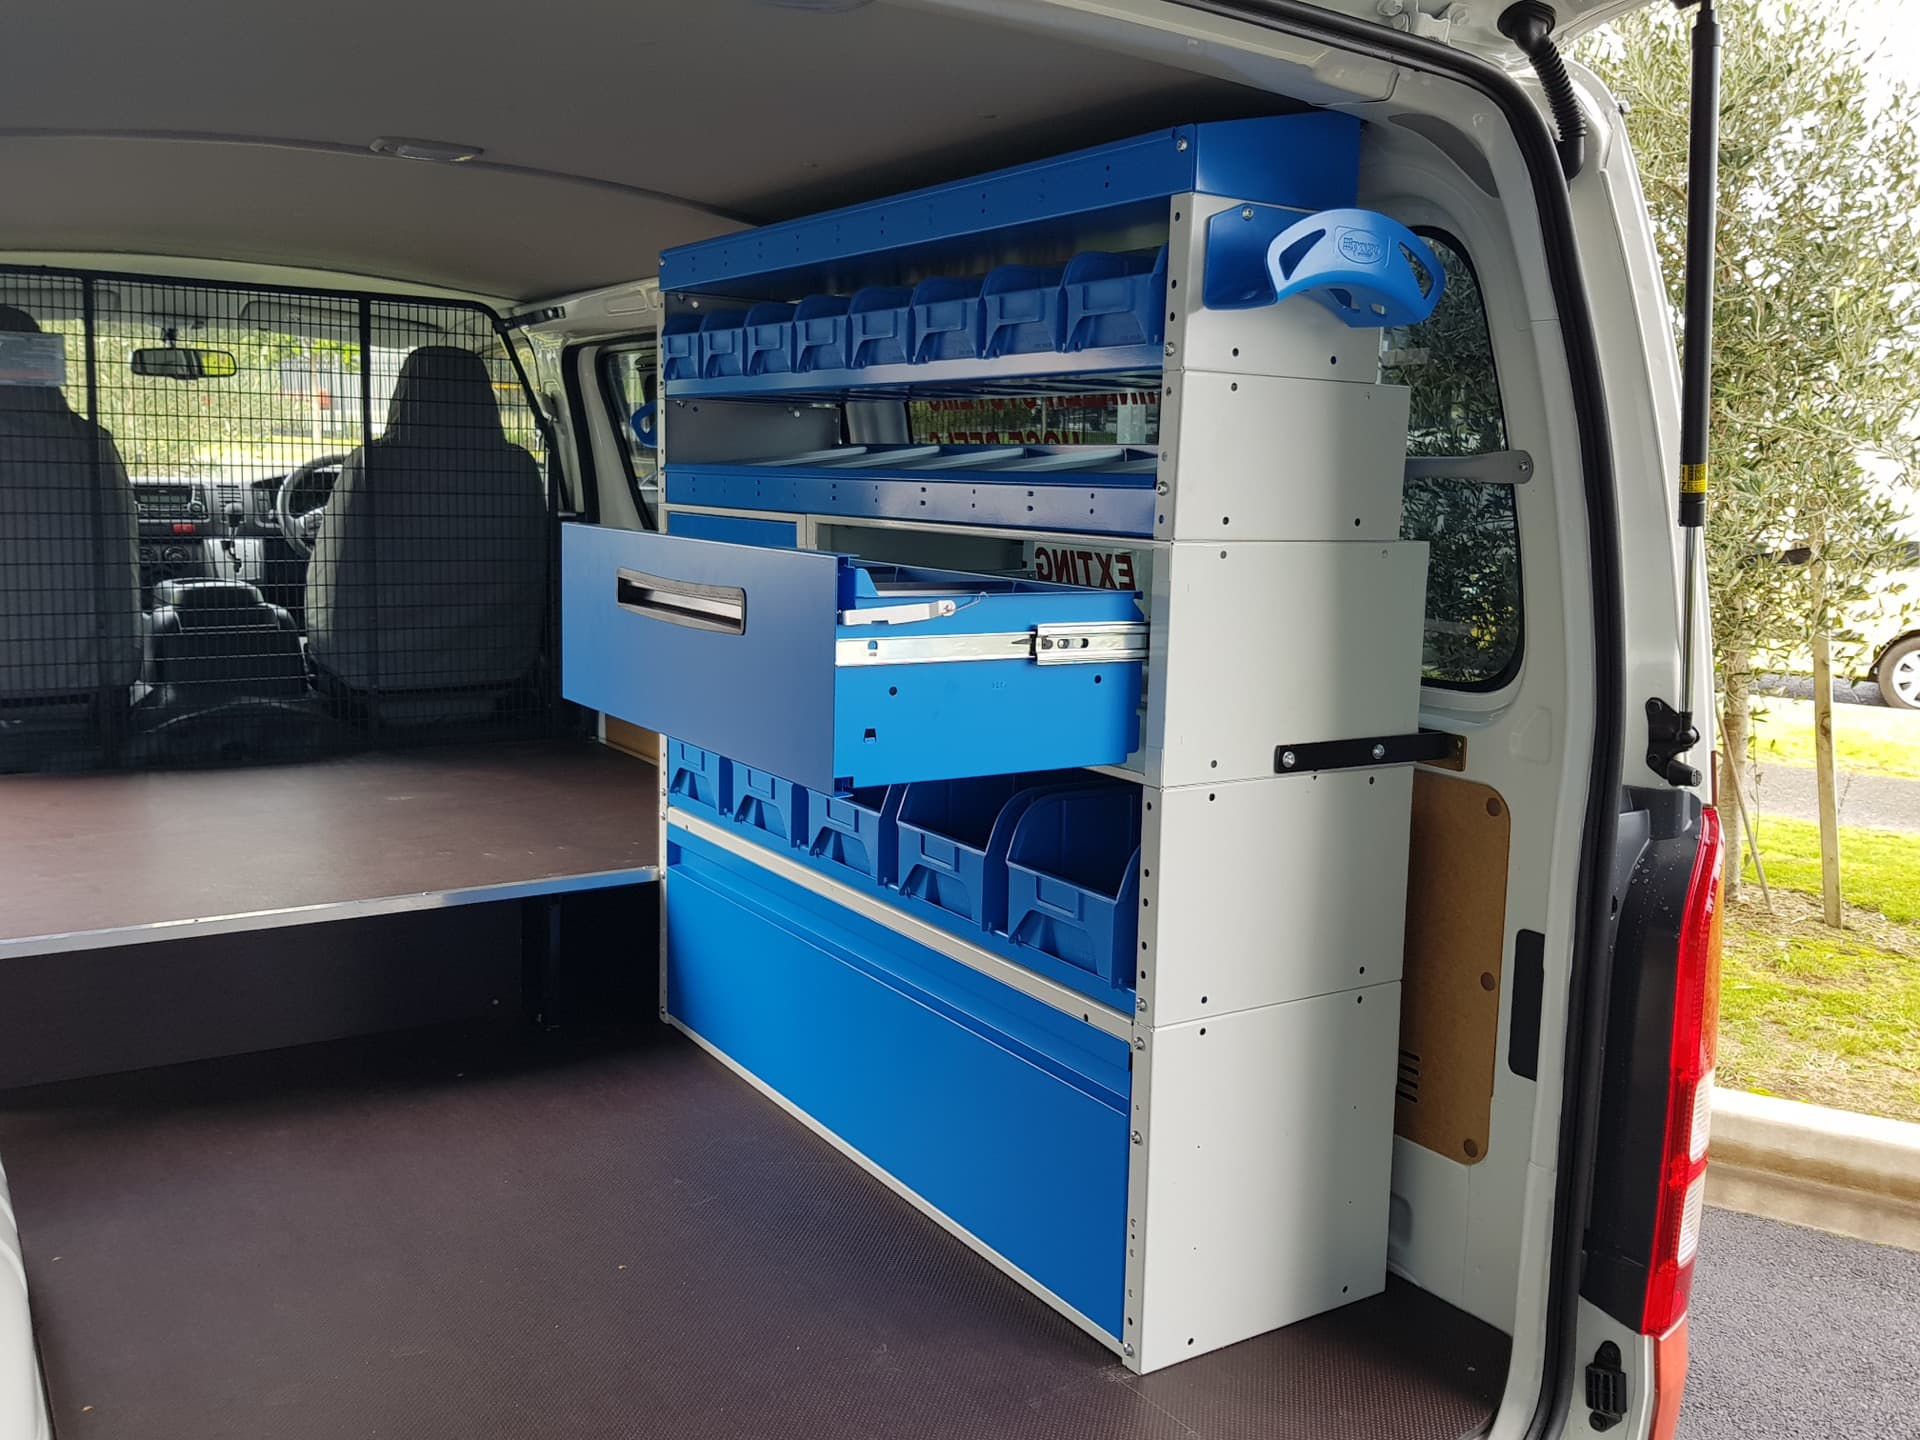 Van fitout with storage drawers